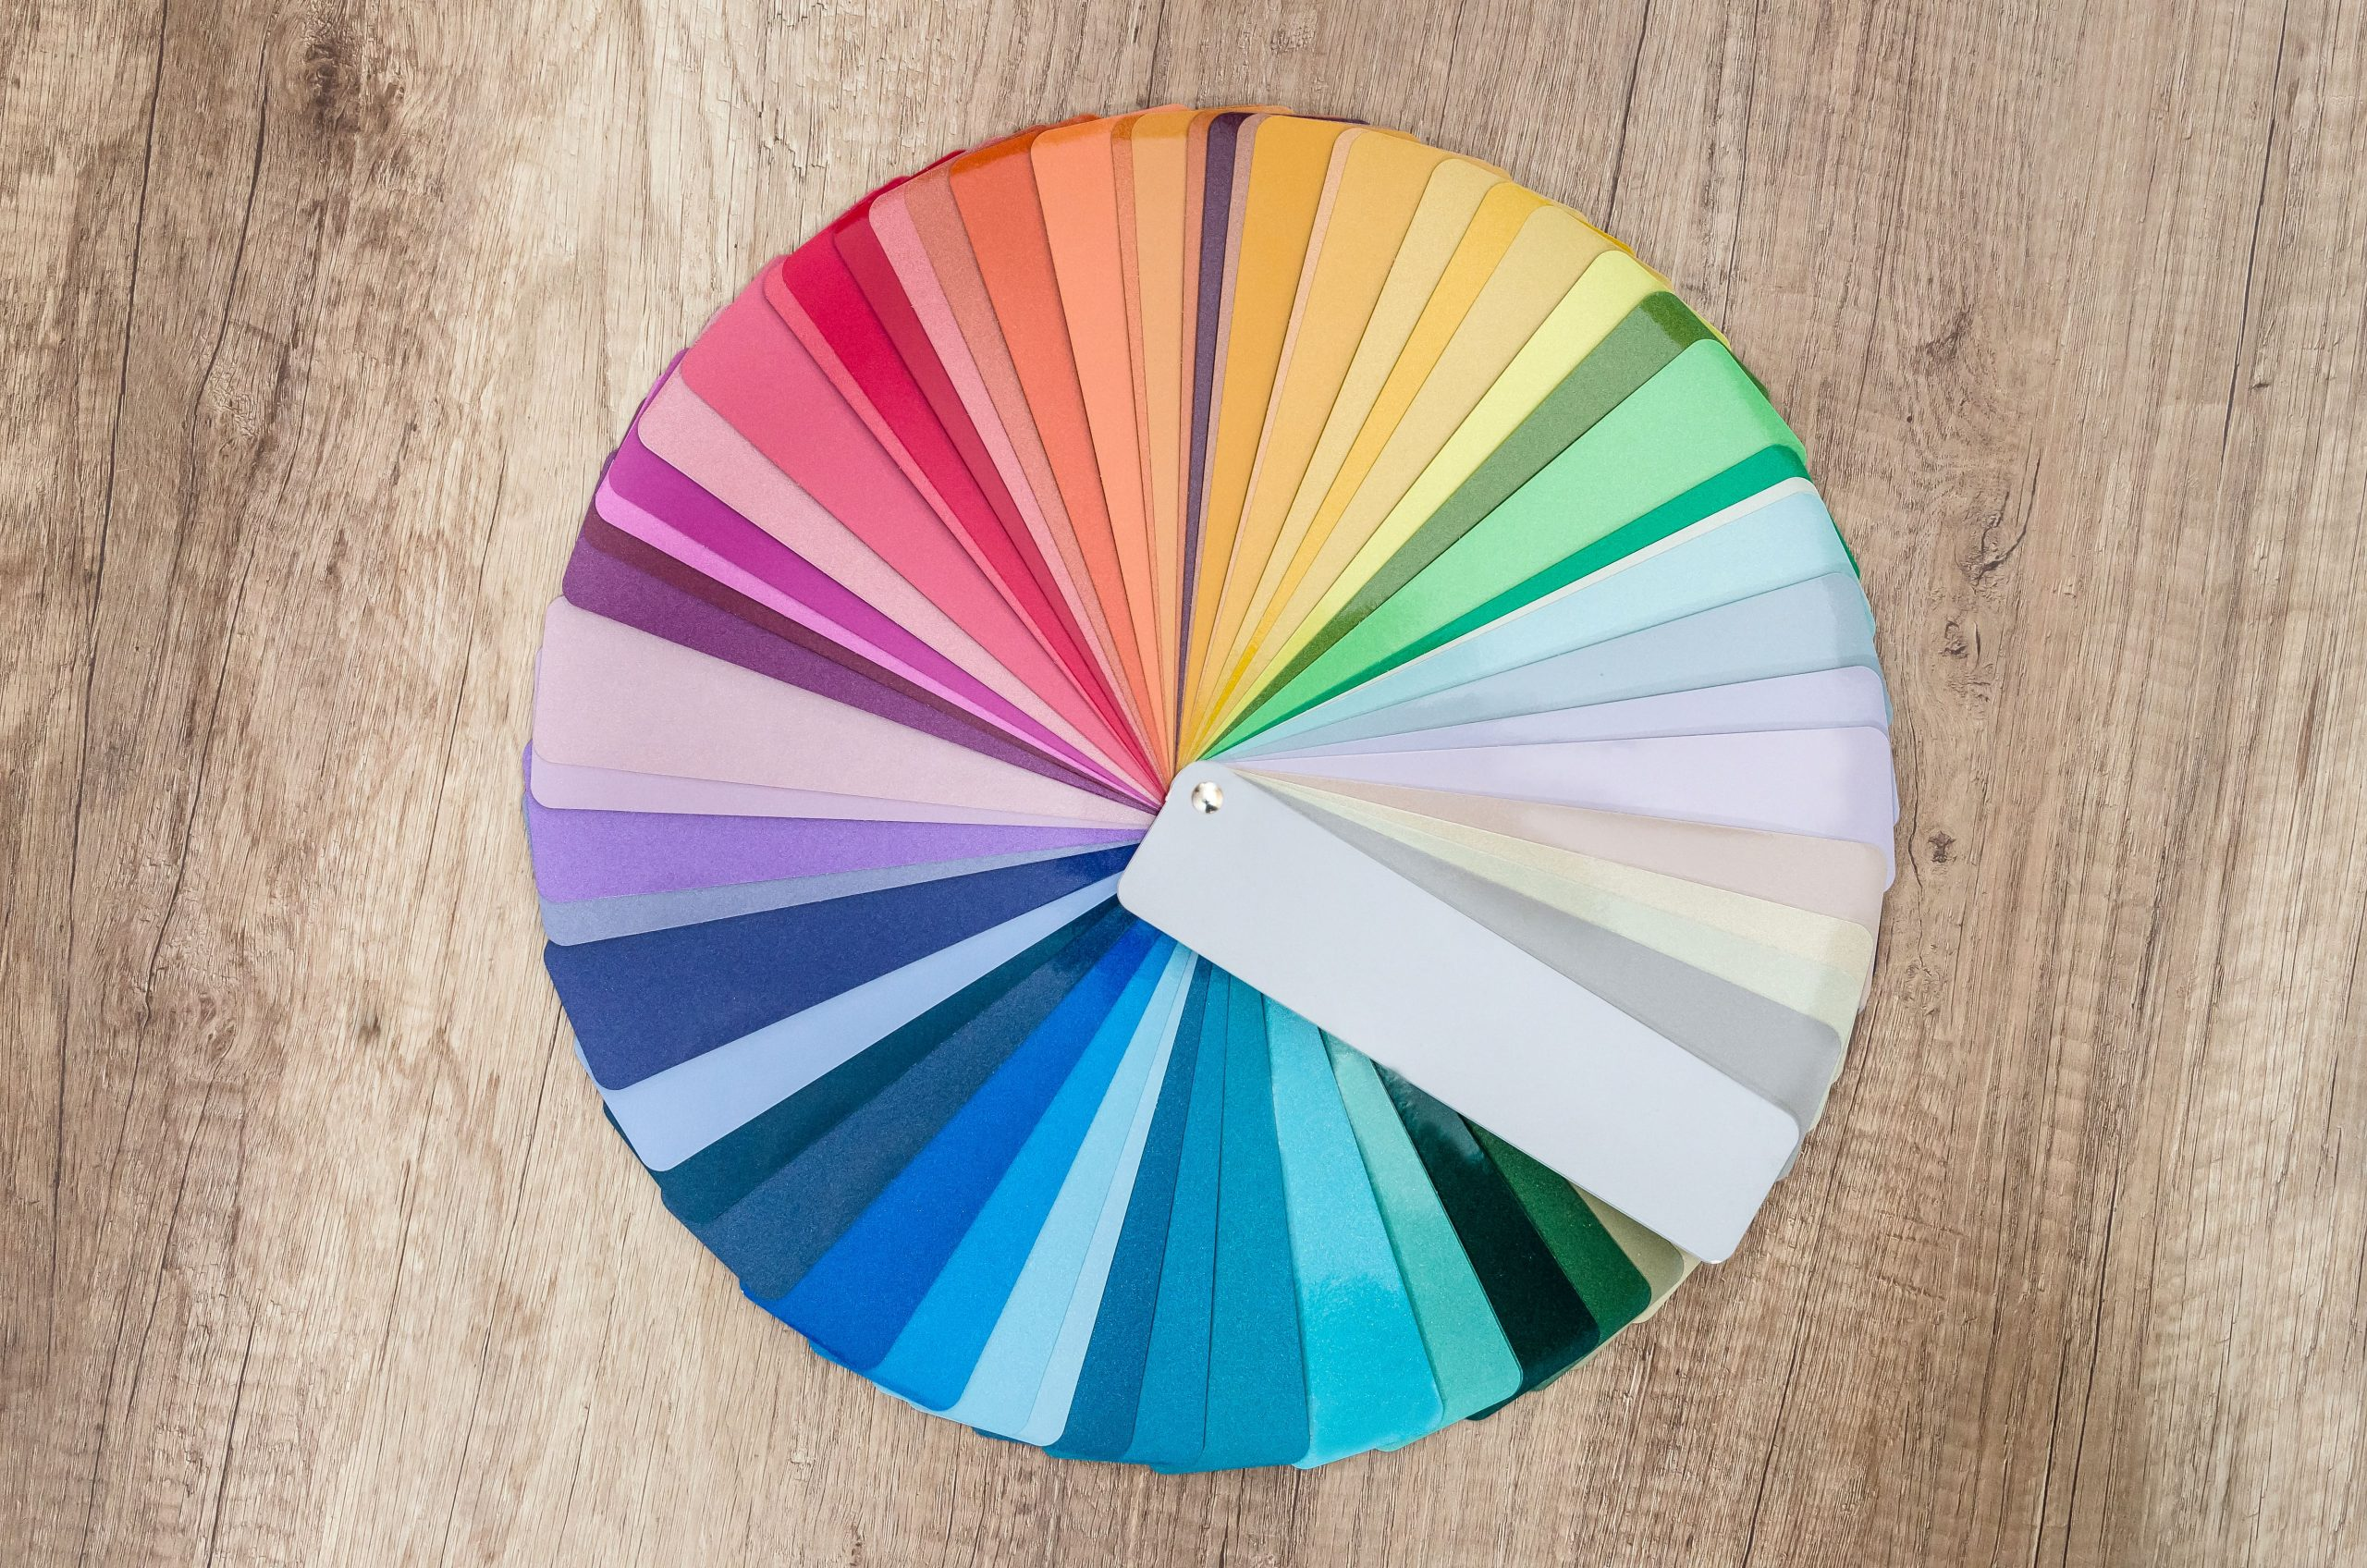 blog image of paints in color wheel